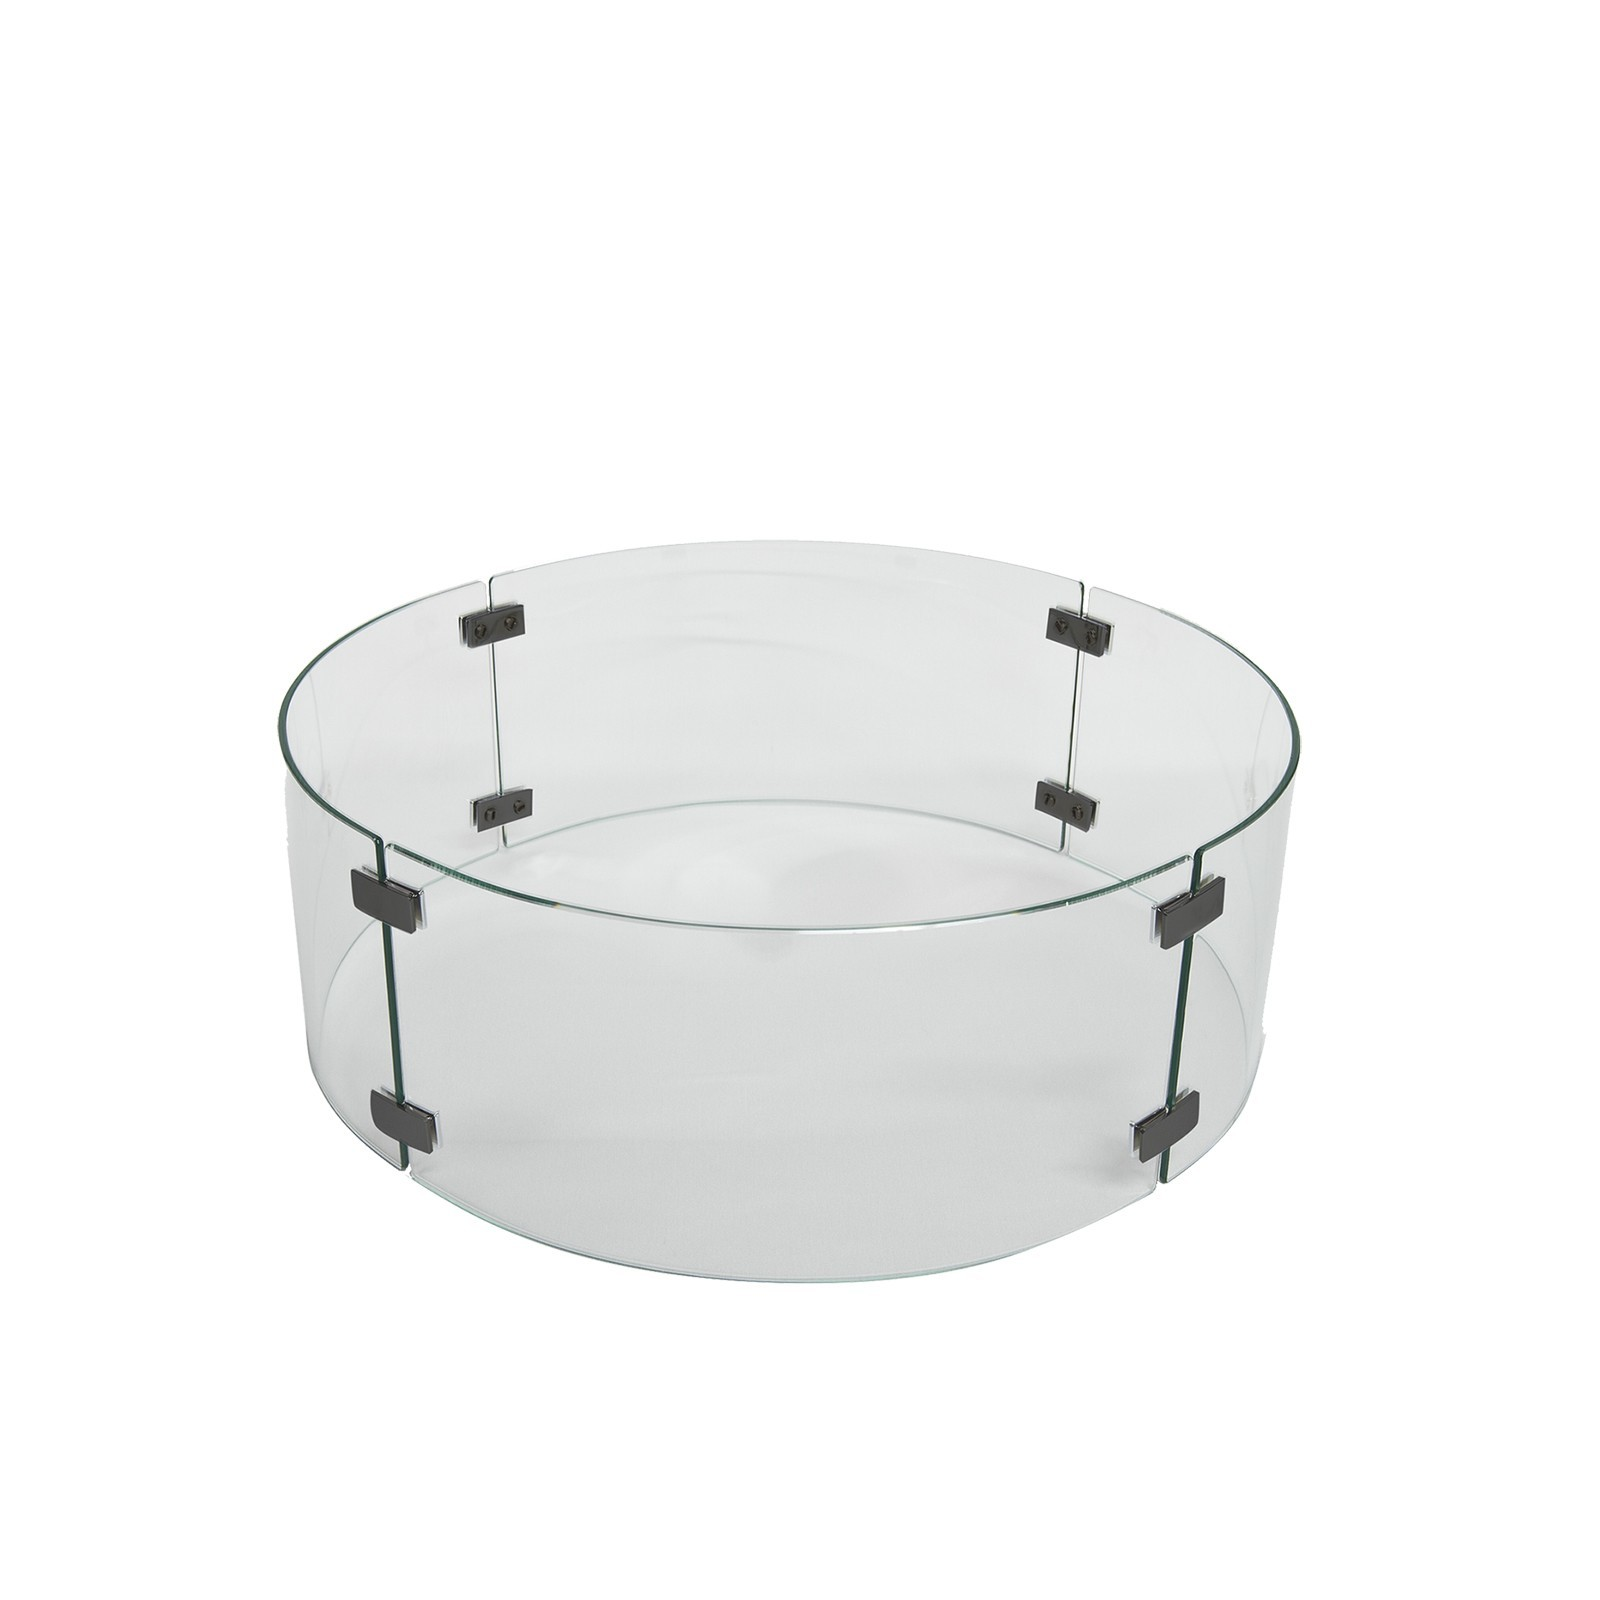 Fire Pit Accessories Small Round Glass Fire Guard Fits 20